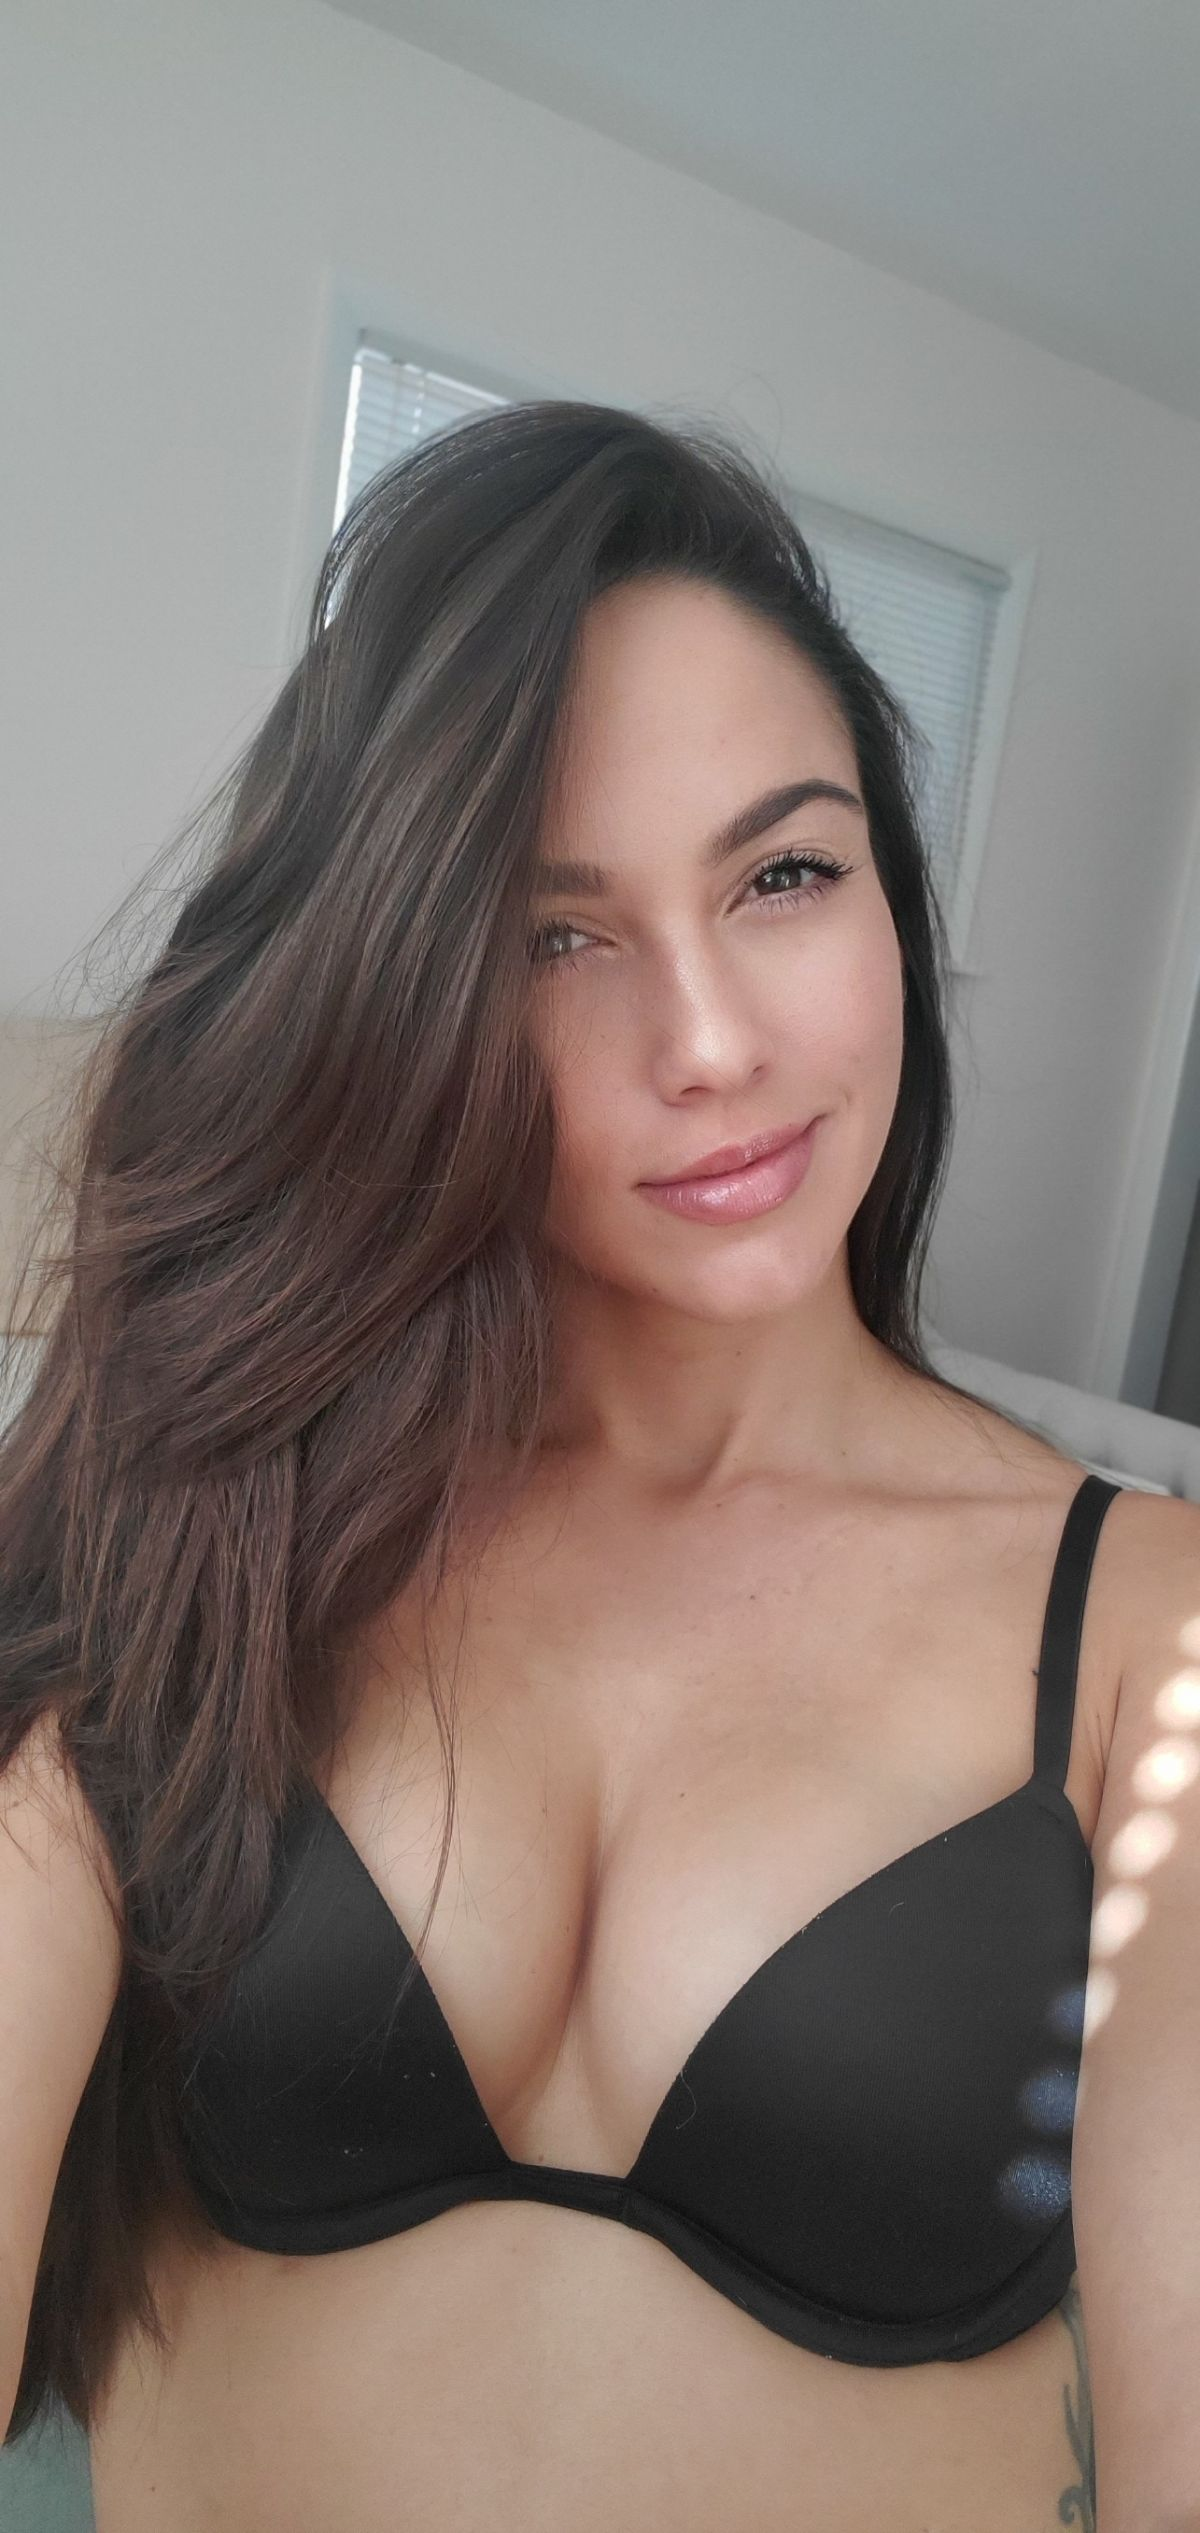 Onlyfans Arianna_Marie onlyfans leaked